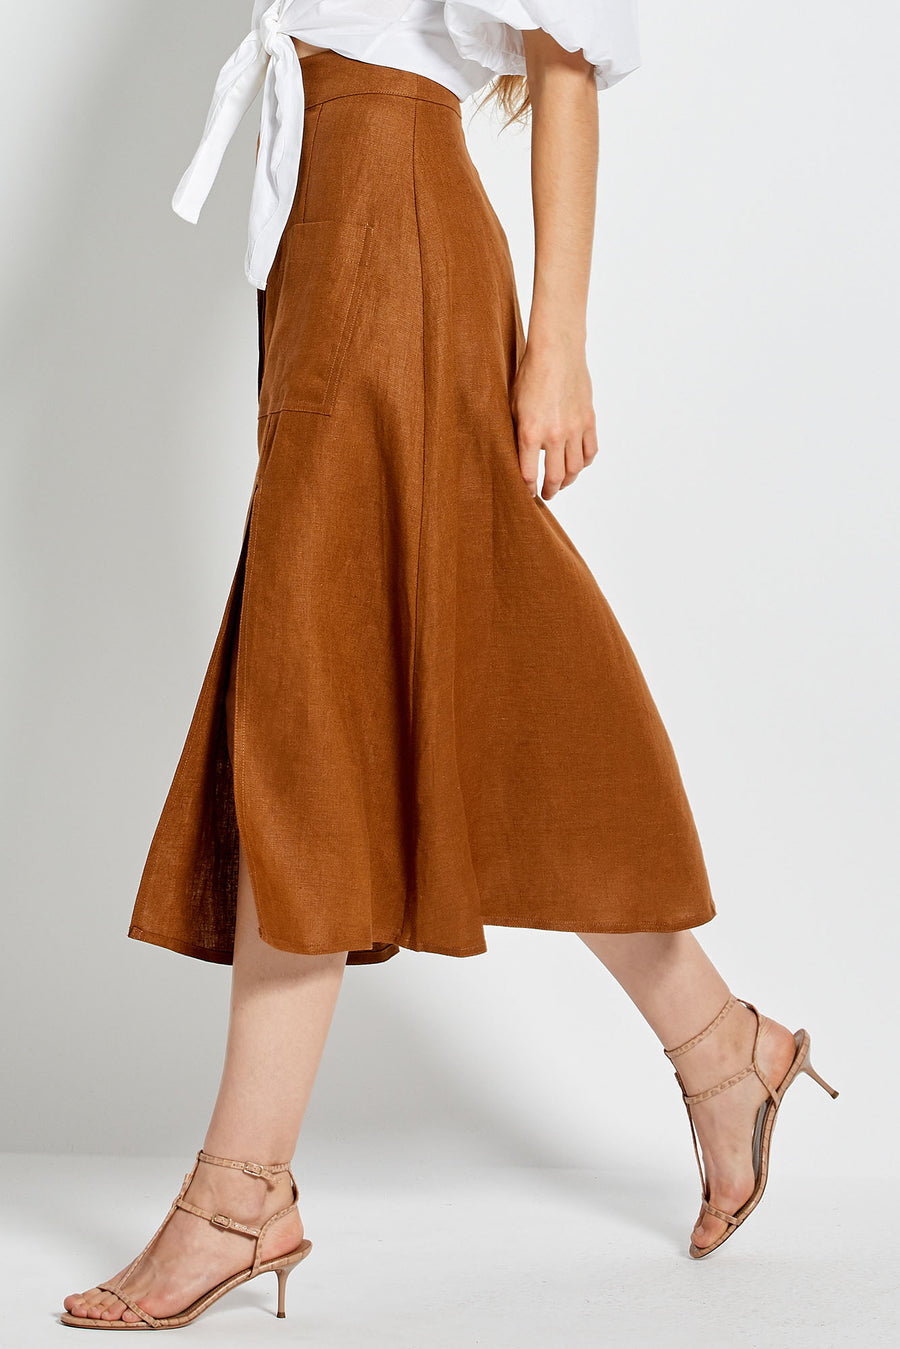 Masala Skirt - Tobacco